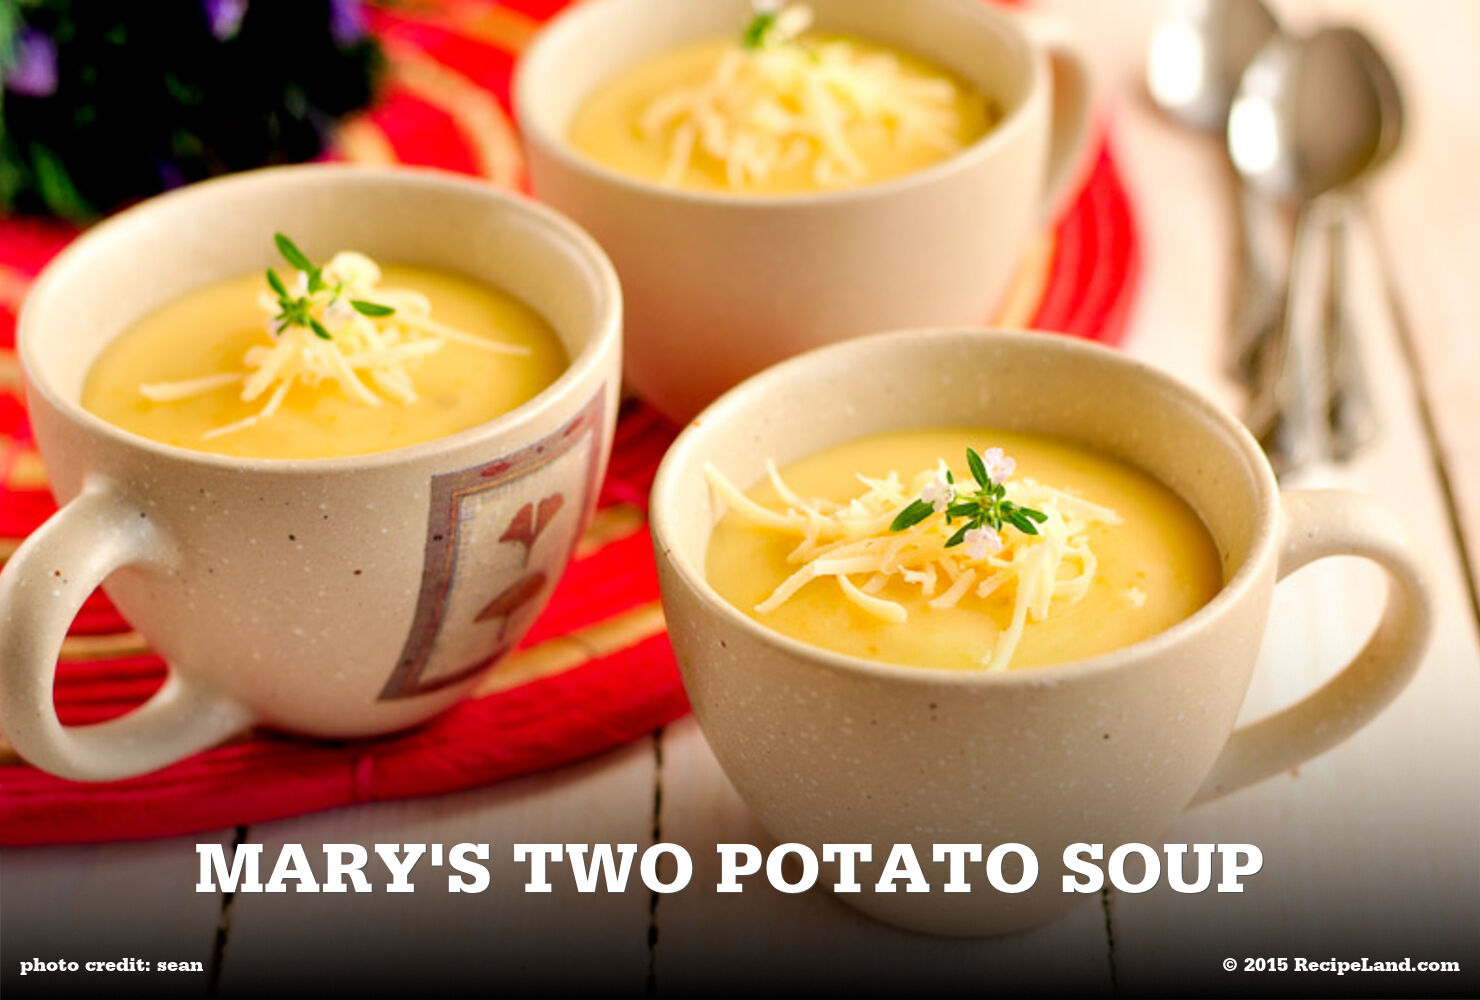 Mary's Two Potato Soup